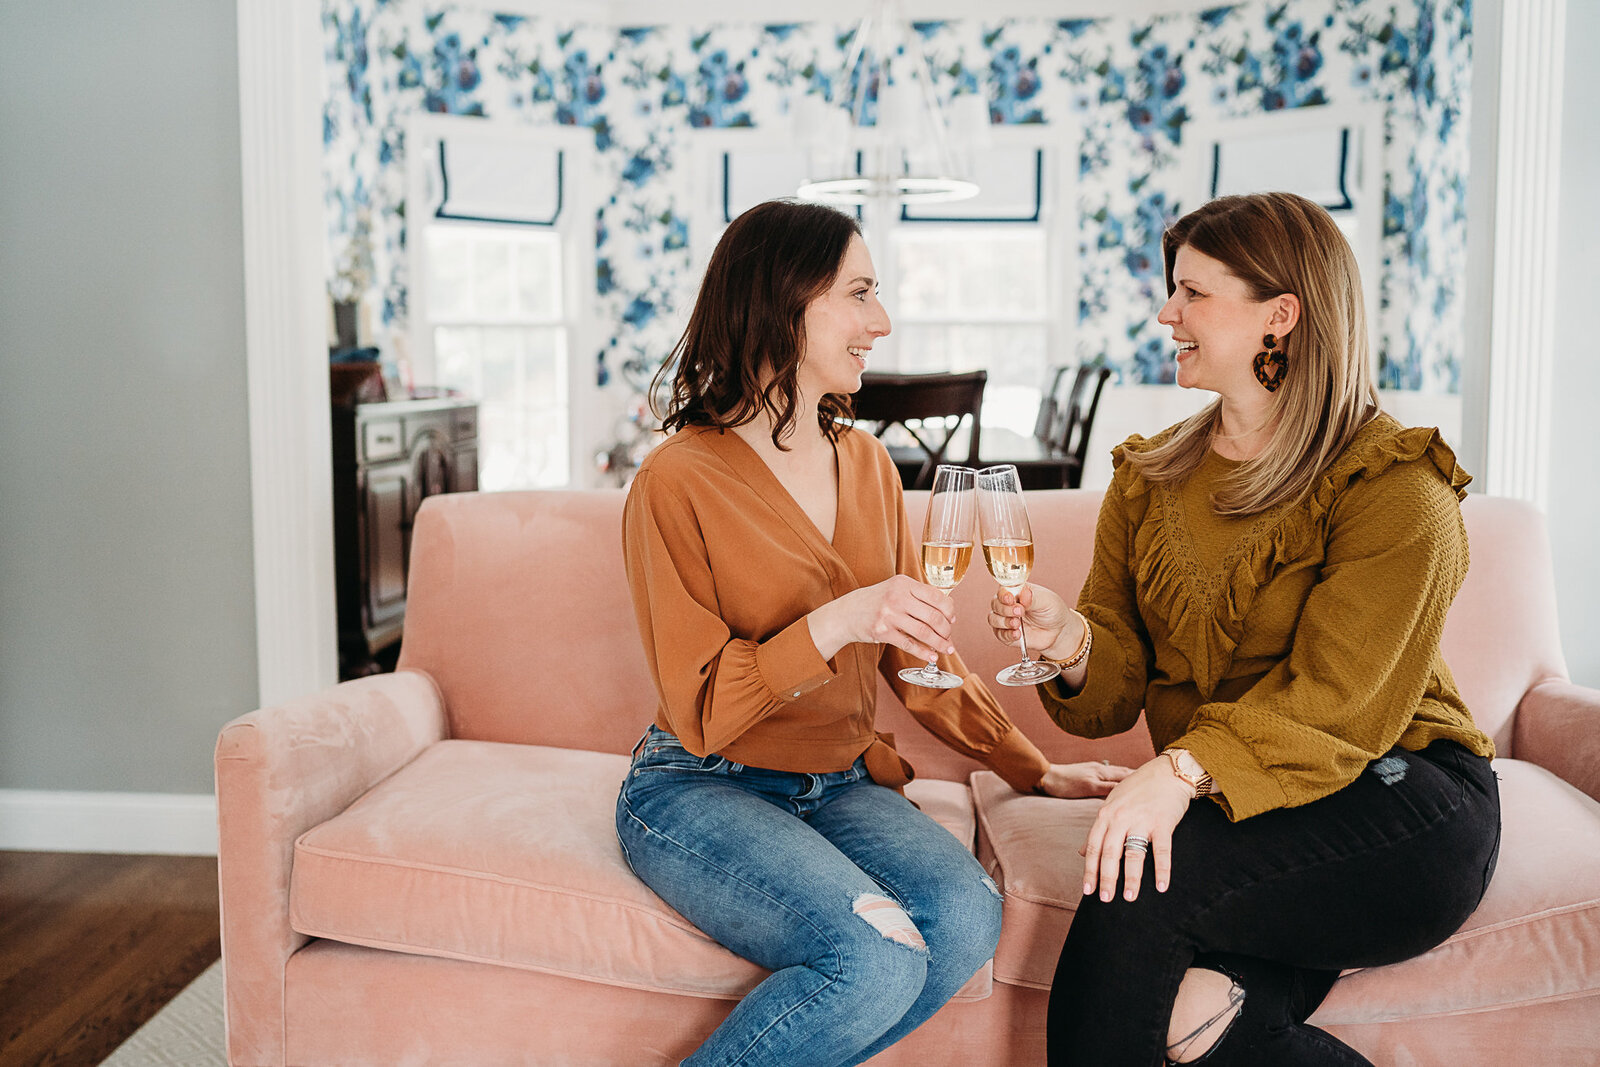 female entrepreneurs toast champagne while sitting on a pink couch